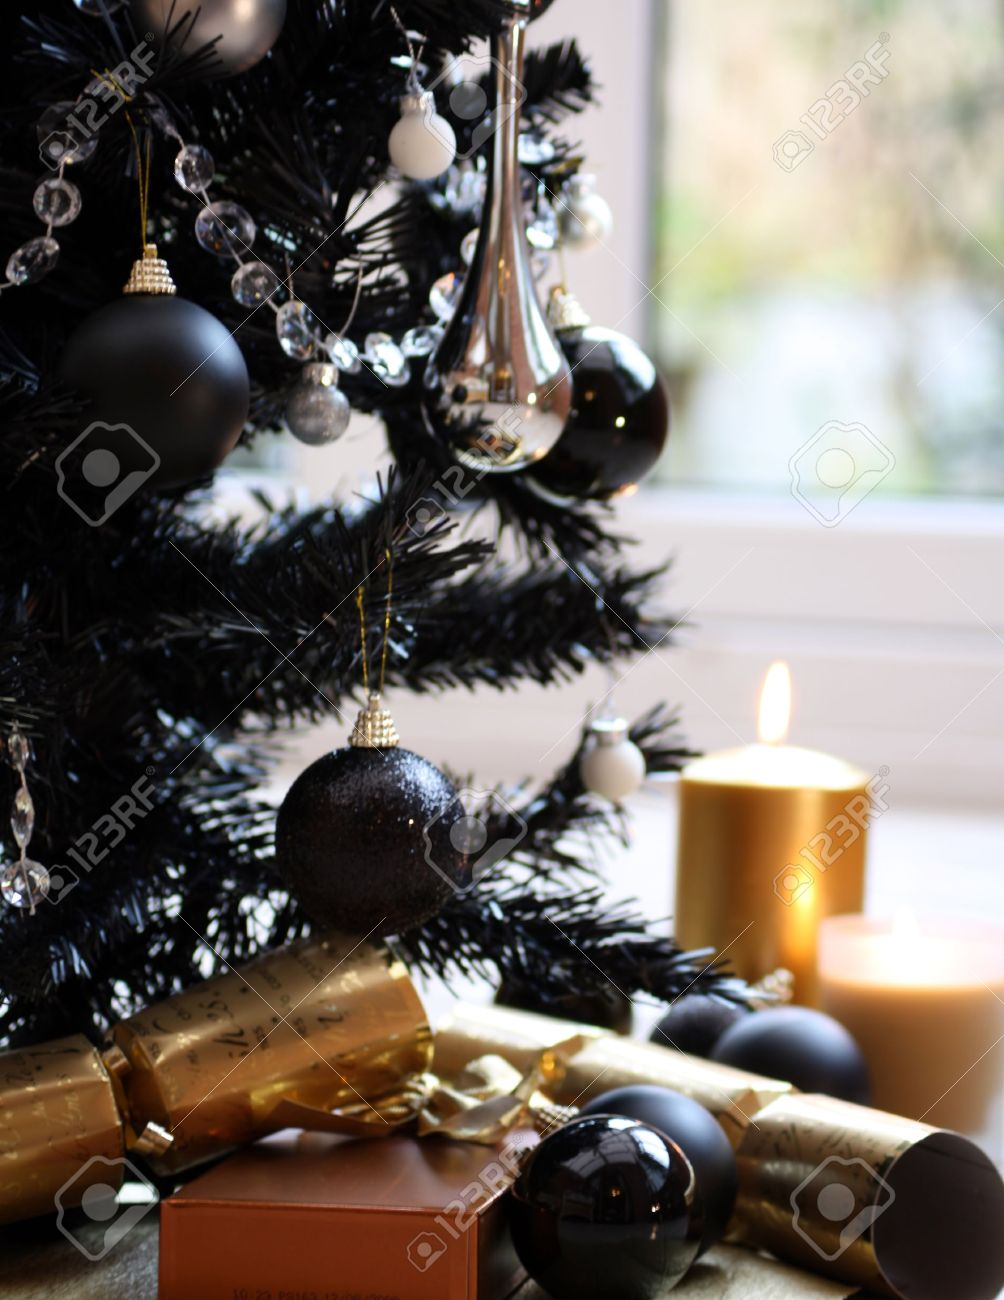 Christmas tree black and silver - Black Christmas Tree With Silver And Black Balls And Gold Candles And Crackers Stock Photo